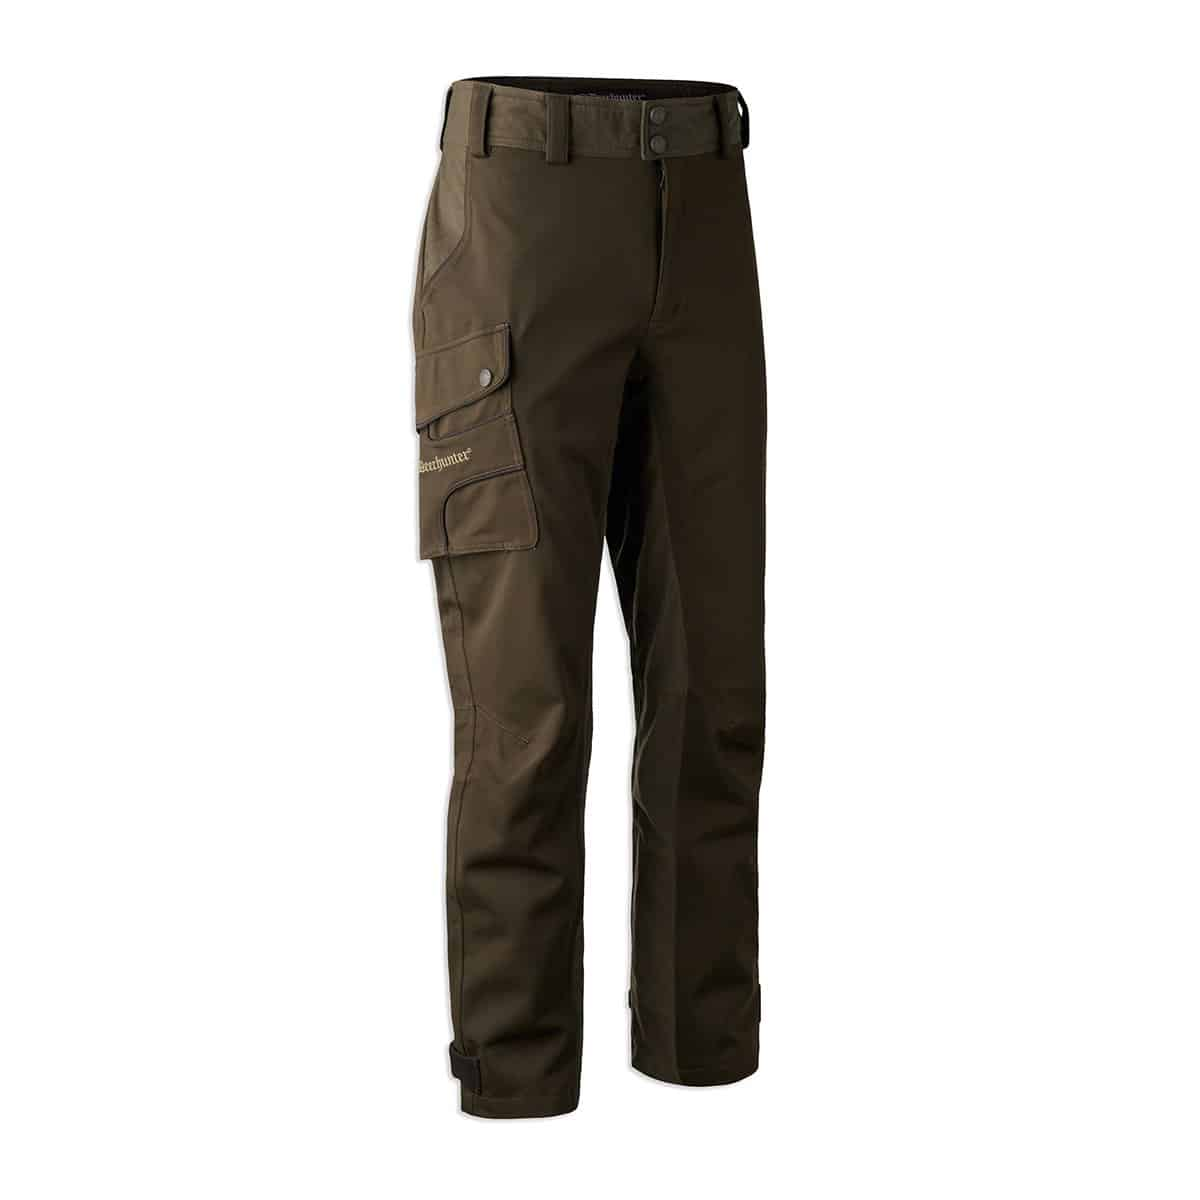 Lovačke Pantalone Deerhunter Muflon Light GS-4507